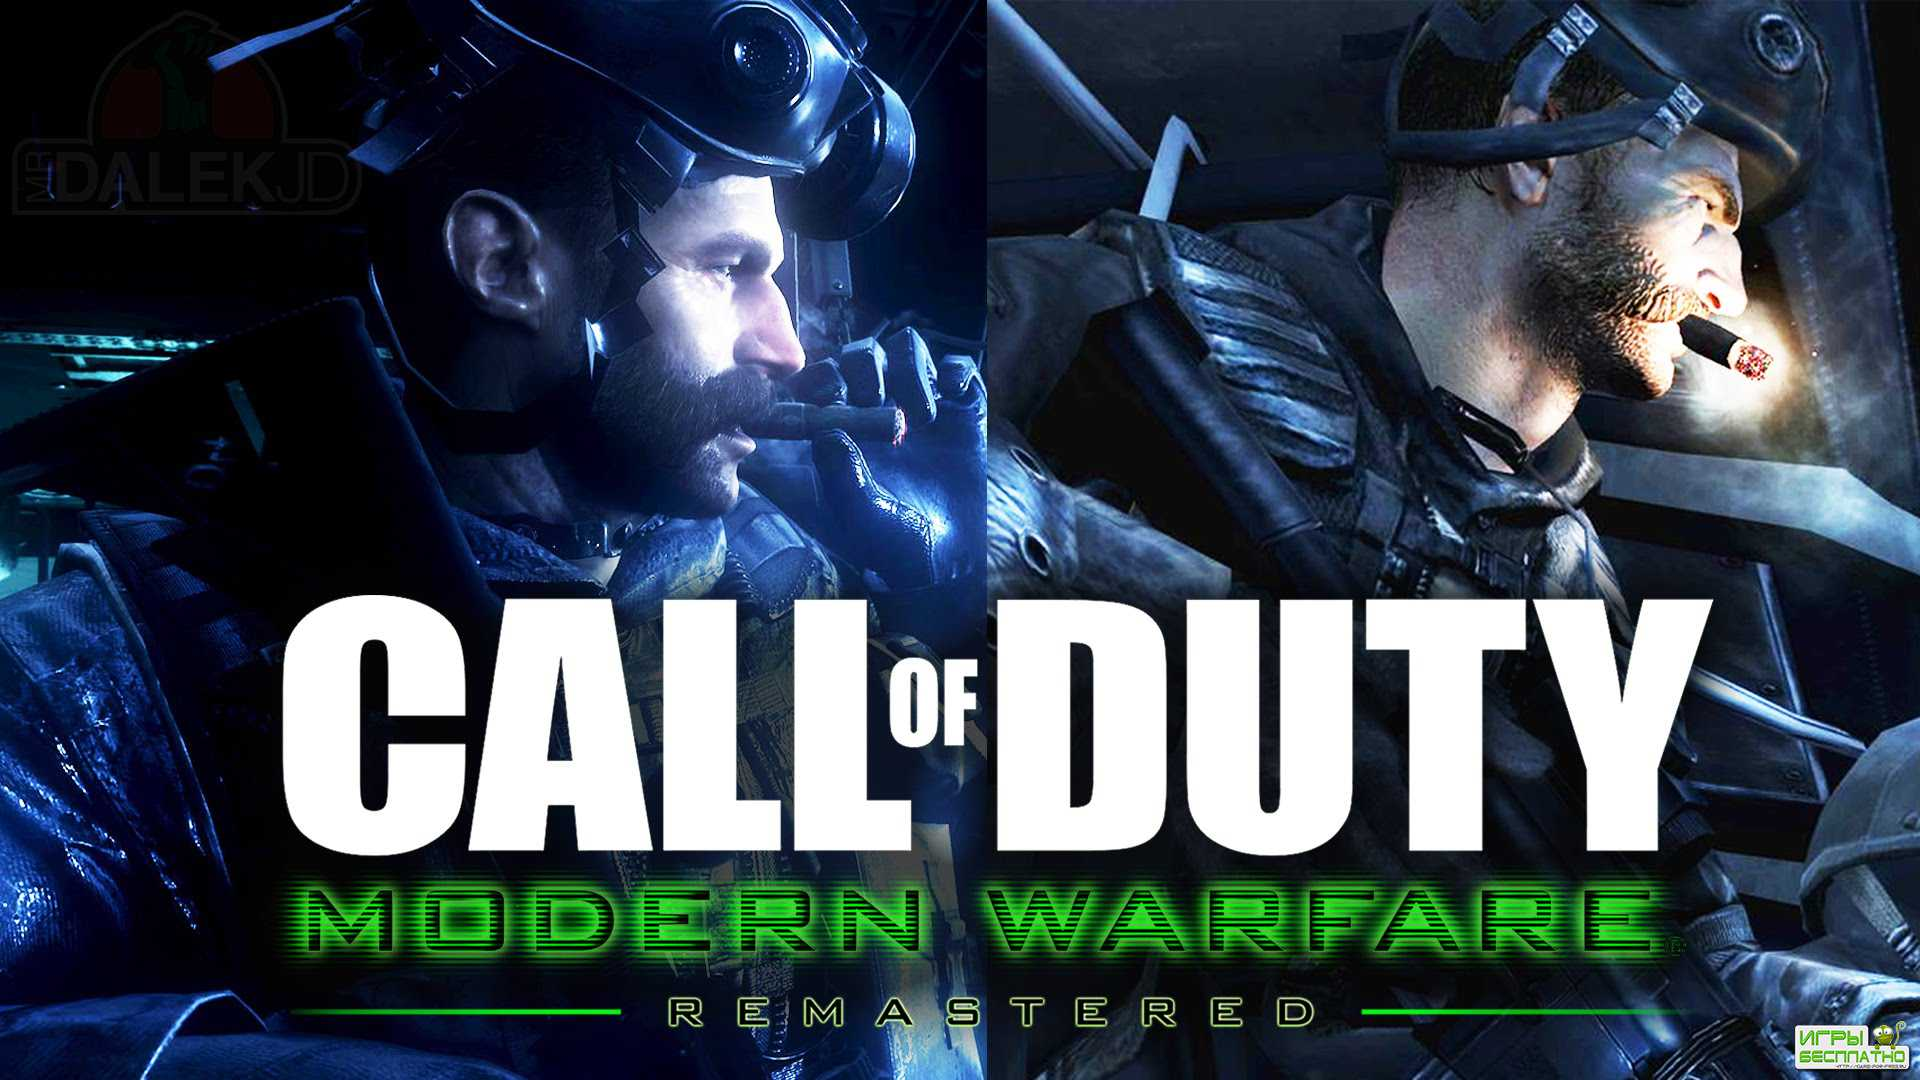 Versus - Call of Duty 4: Modern Warfare vs Modern Warfare Remastered